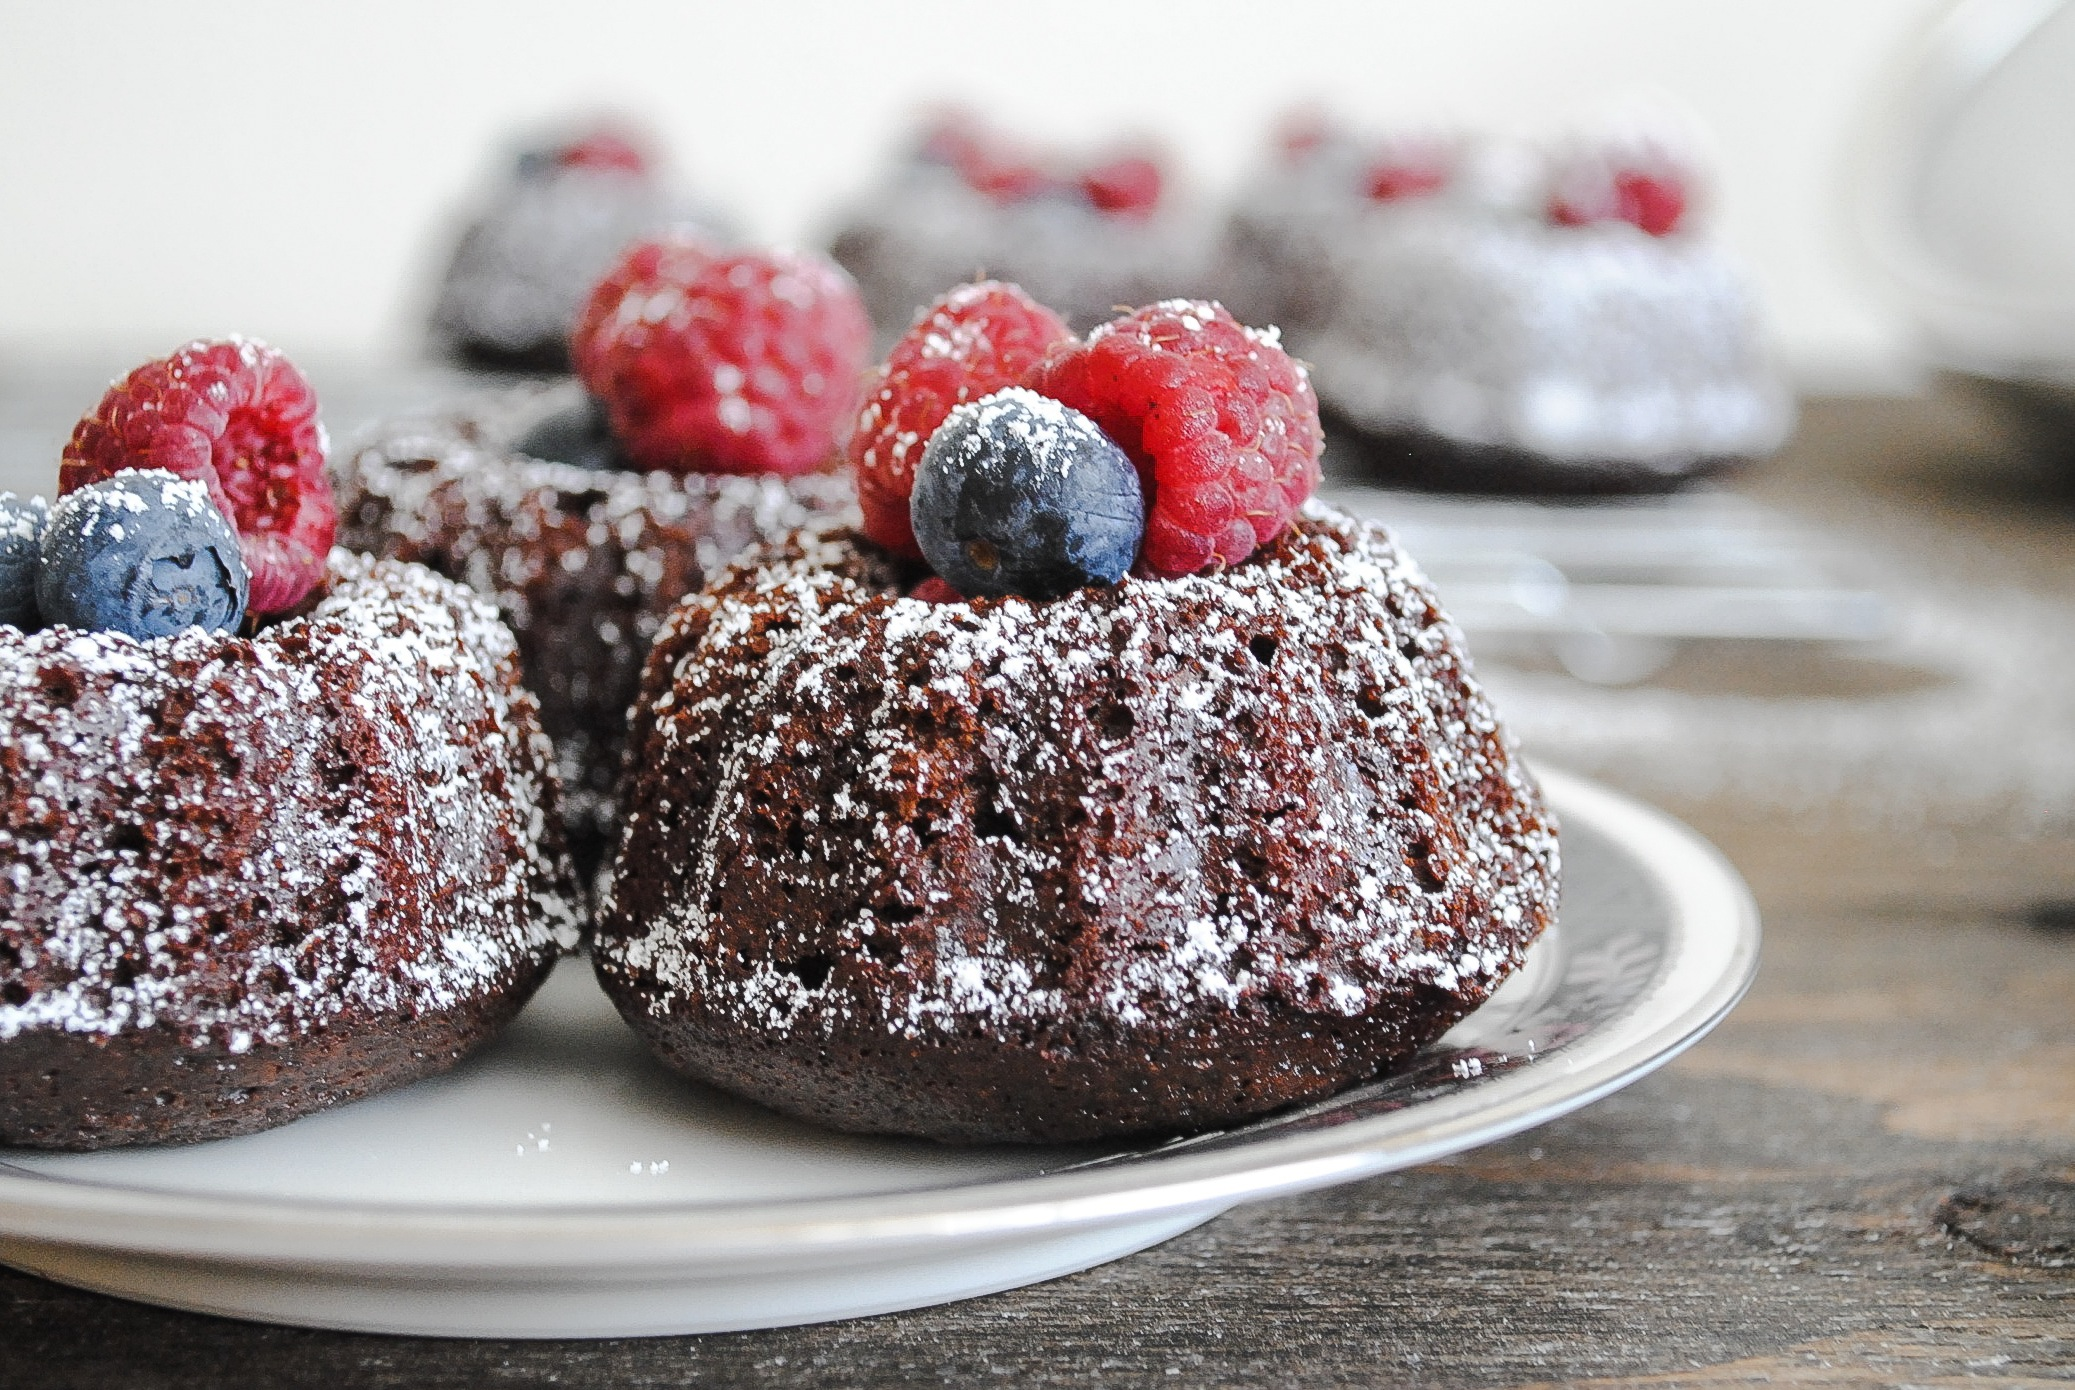 Mini Cake Recipes With Pictures : Mini Chocolate Bundt Cakes Blessings + Good Food